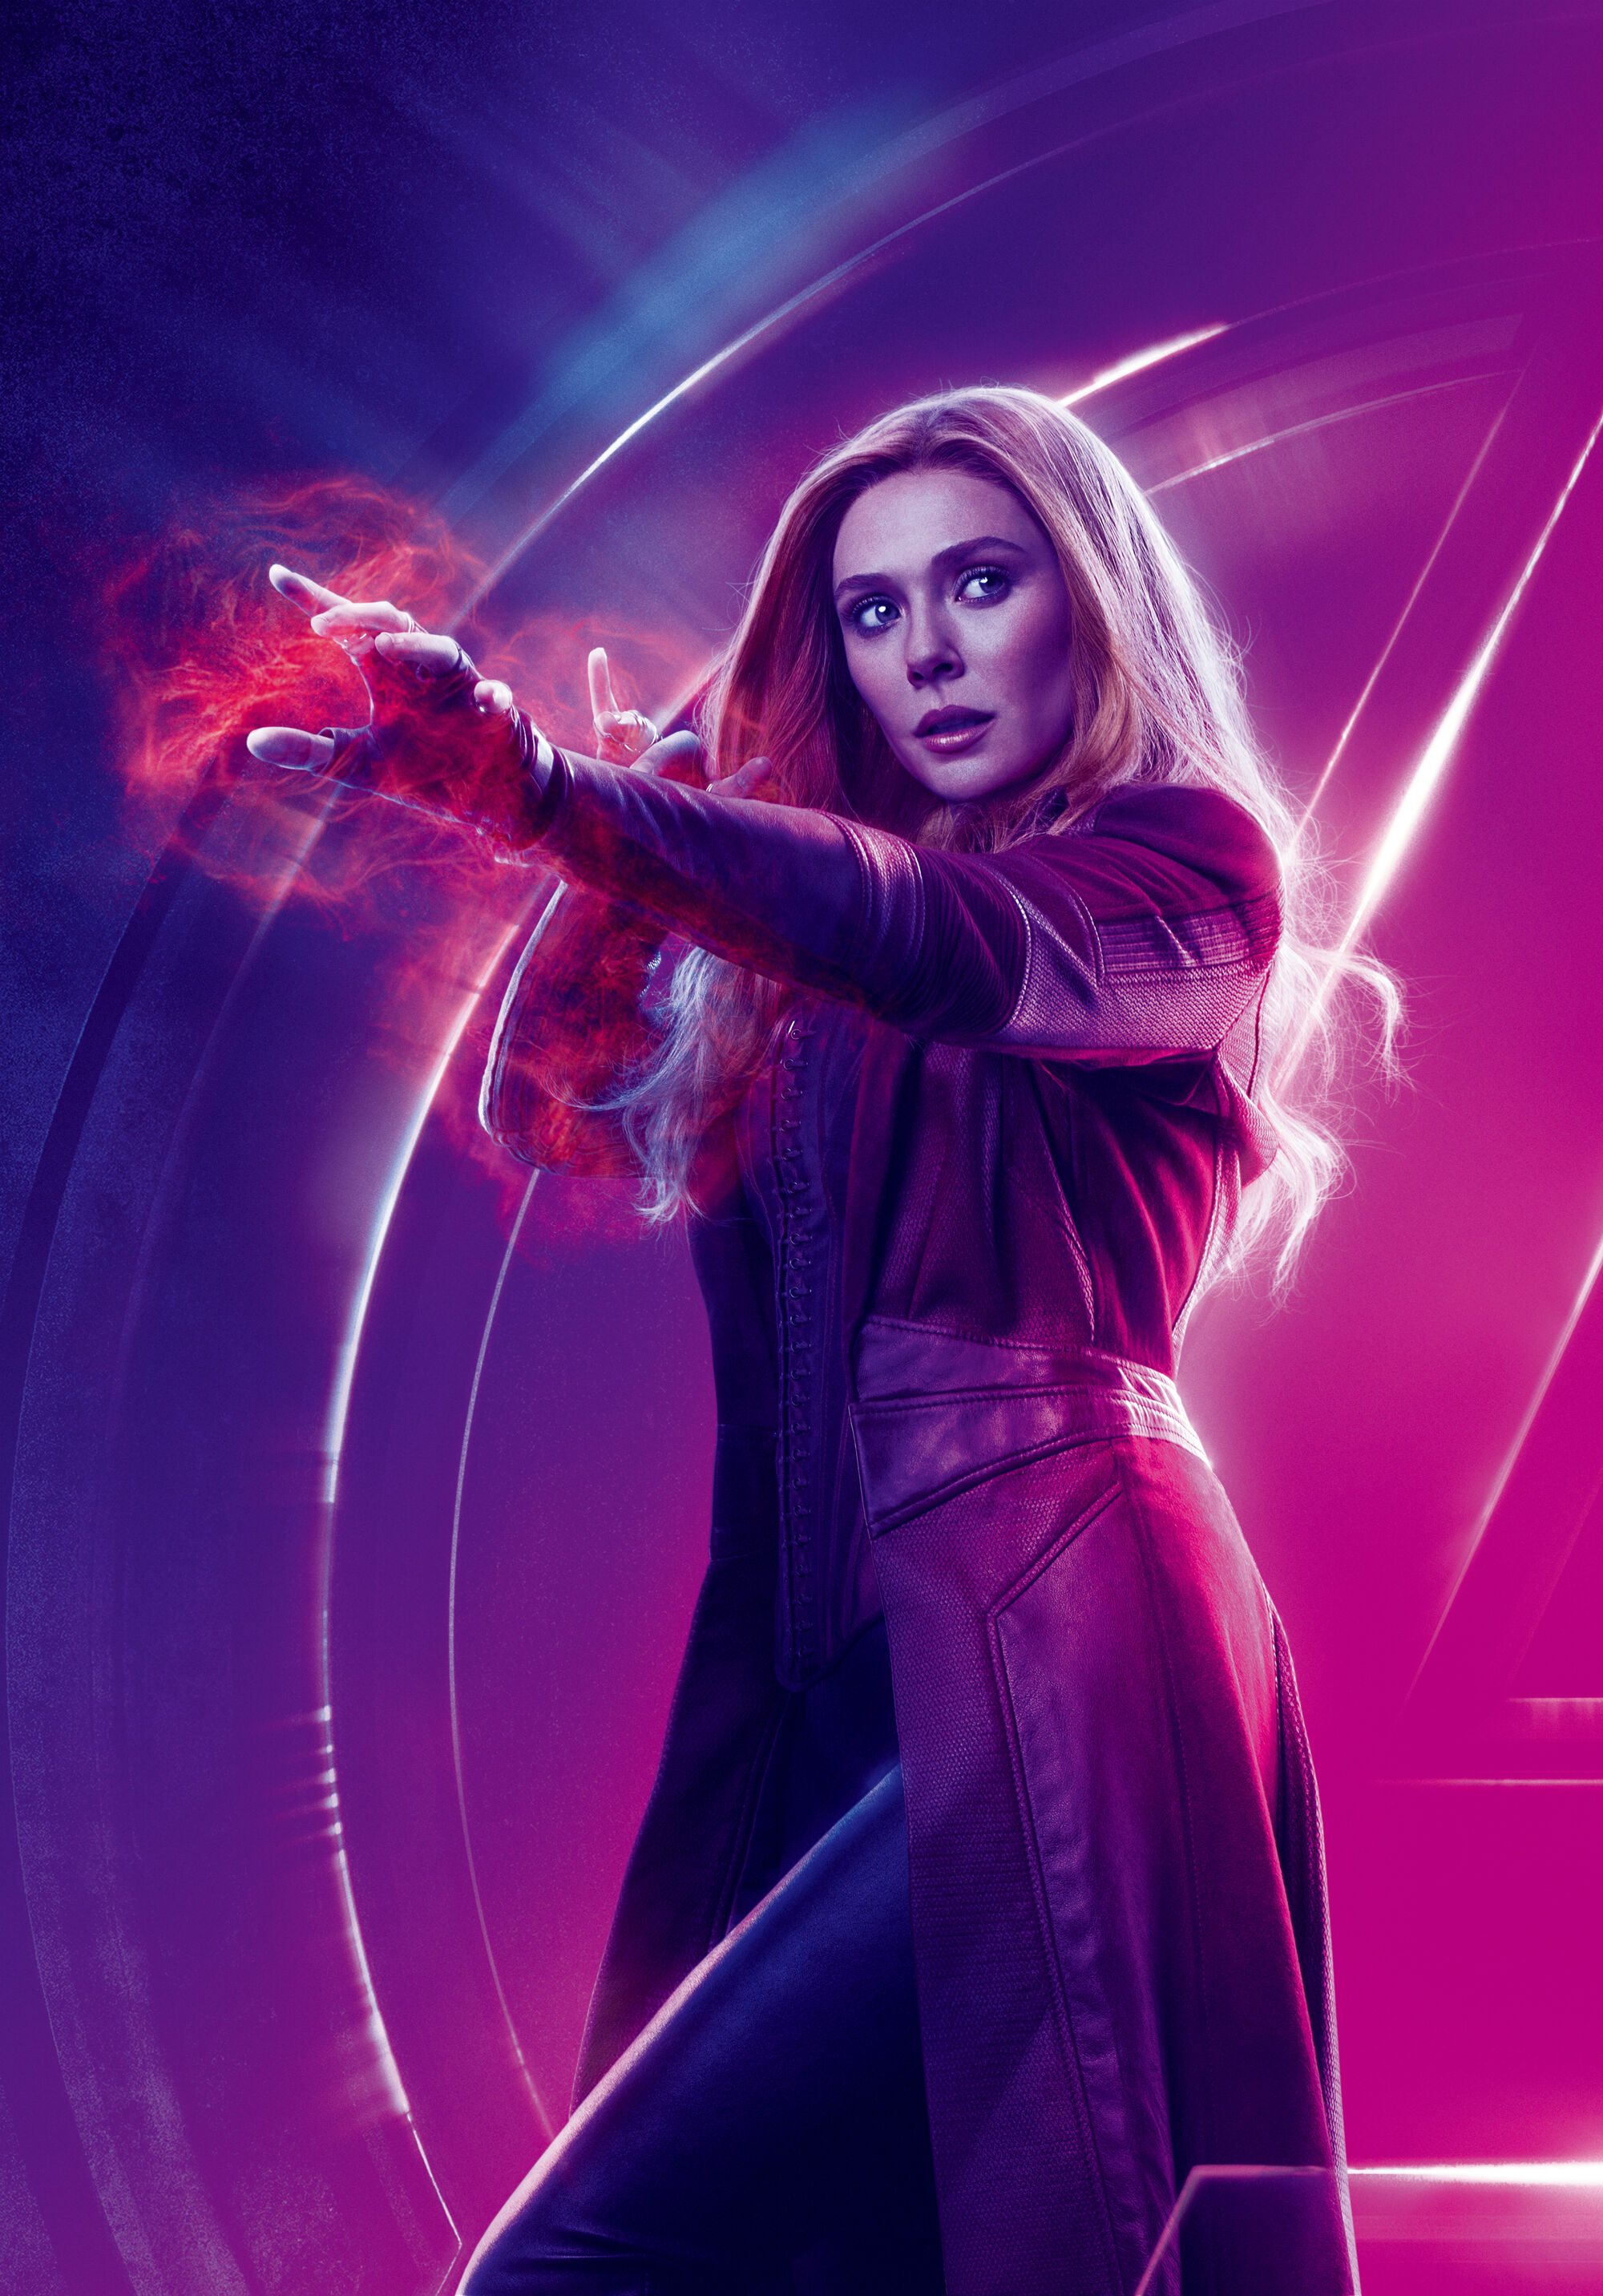 Scarlet Witch | Marvel Cinematic Universe Wiki | FANDOM powered by Wikia